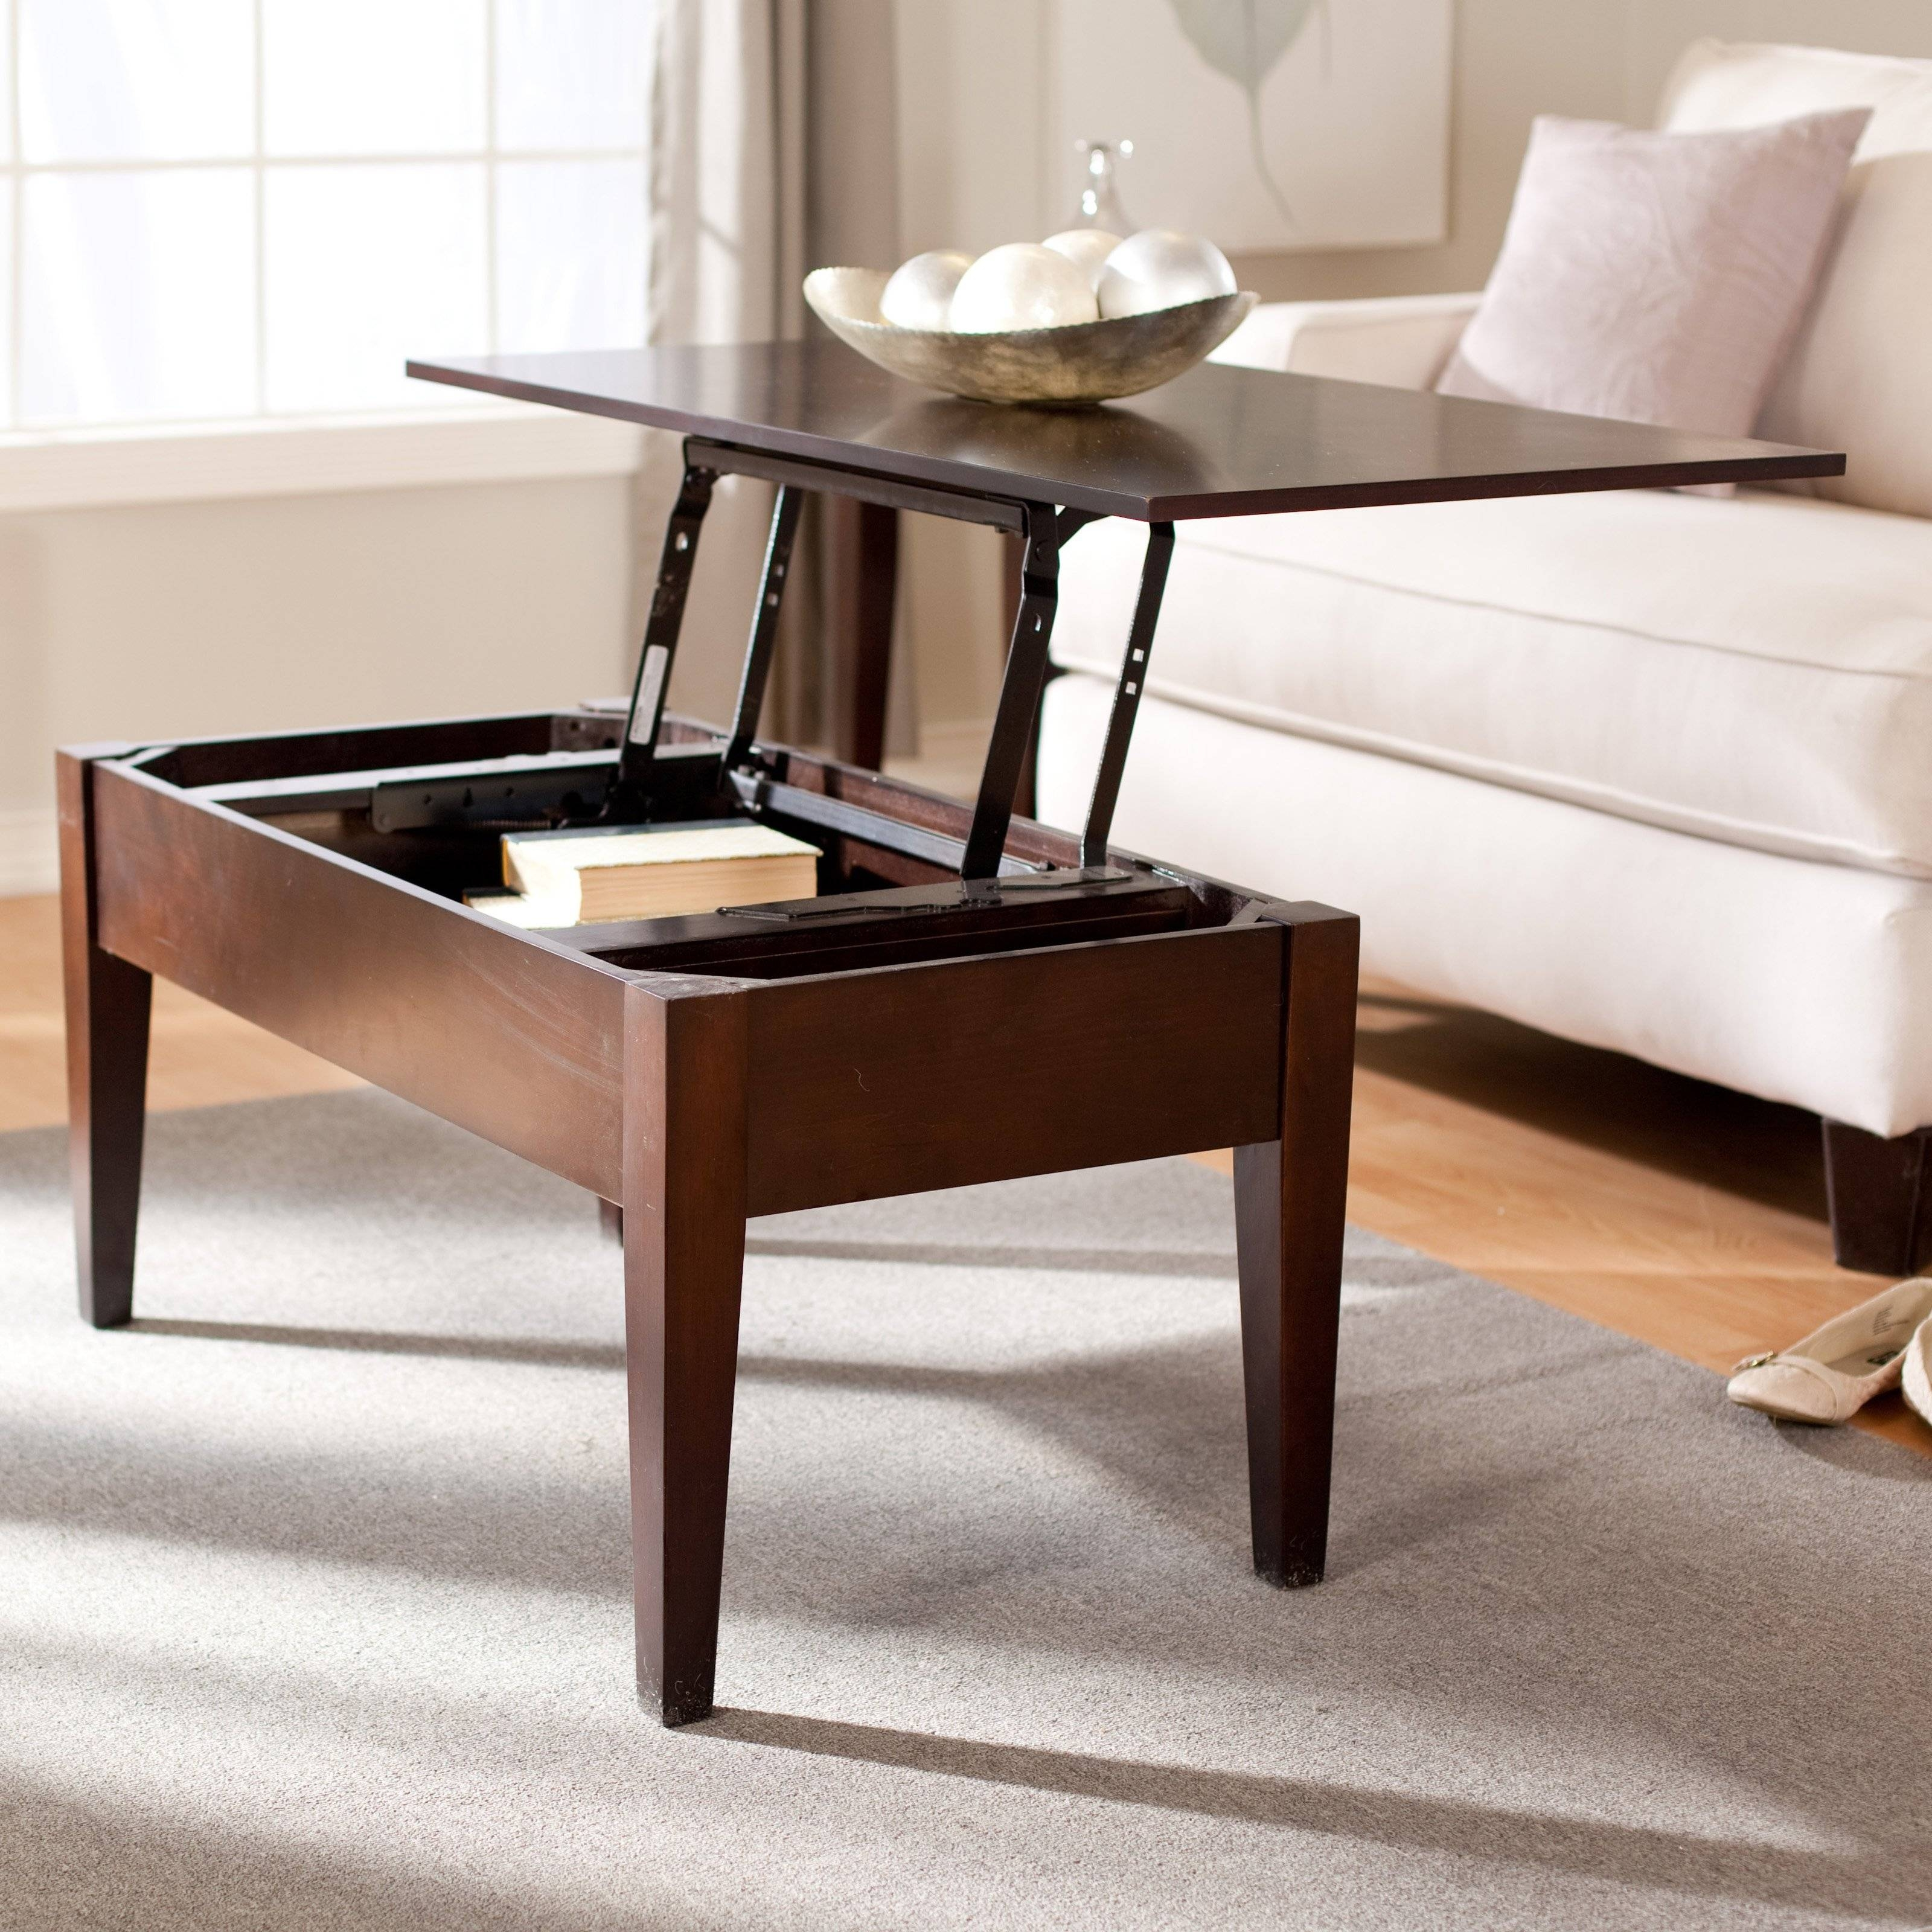 Turner Lift Top Coffee Table – Espresso | Hayneedle In Raise Up Coffee Tables (View 9 of 30)